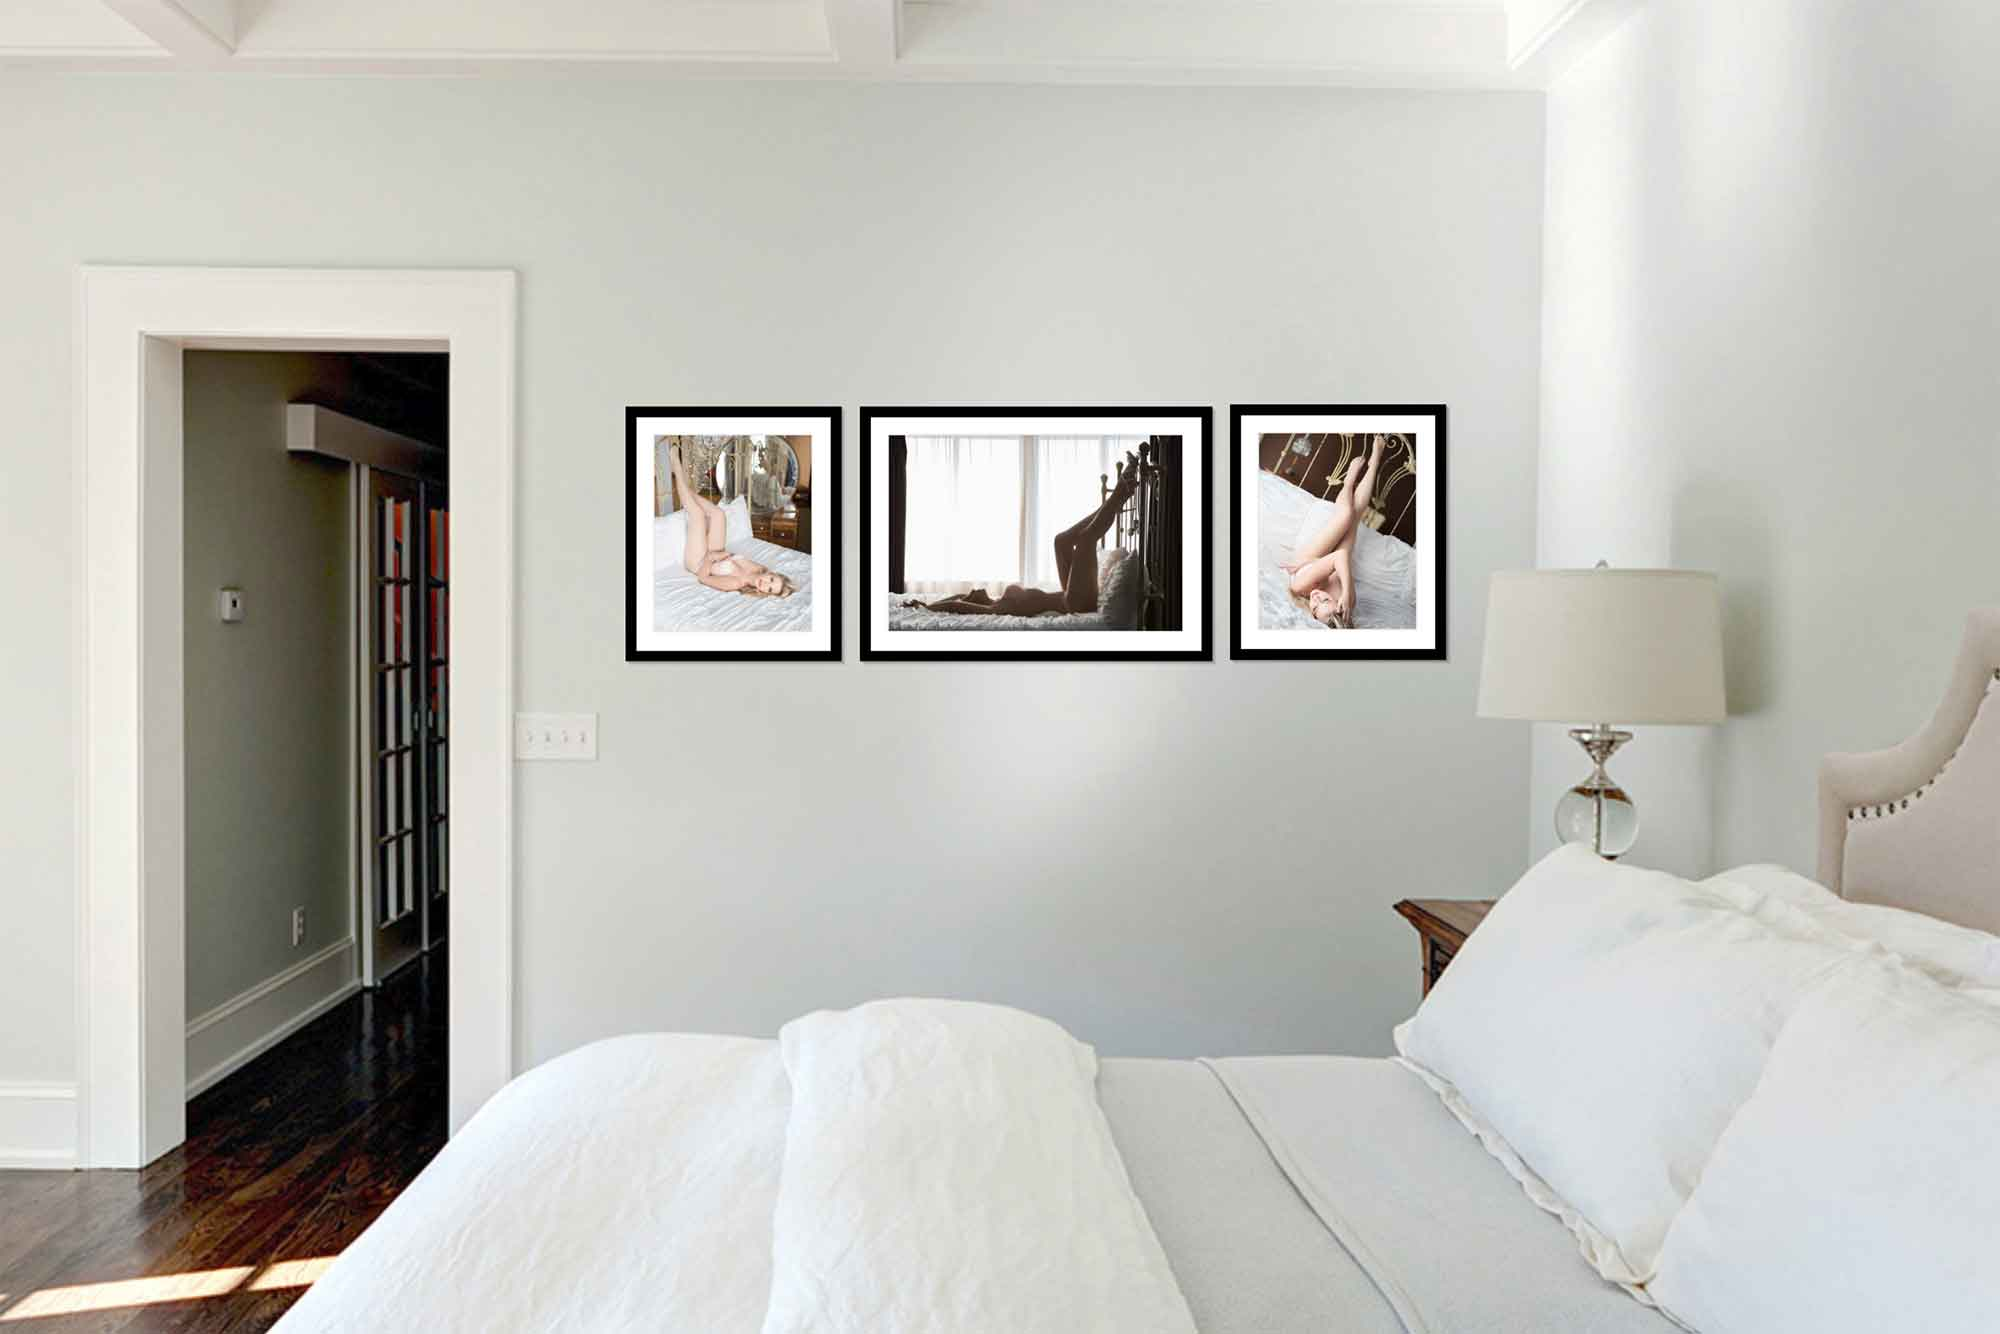 in-room-2-web-res